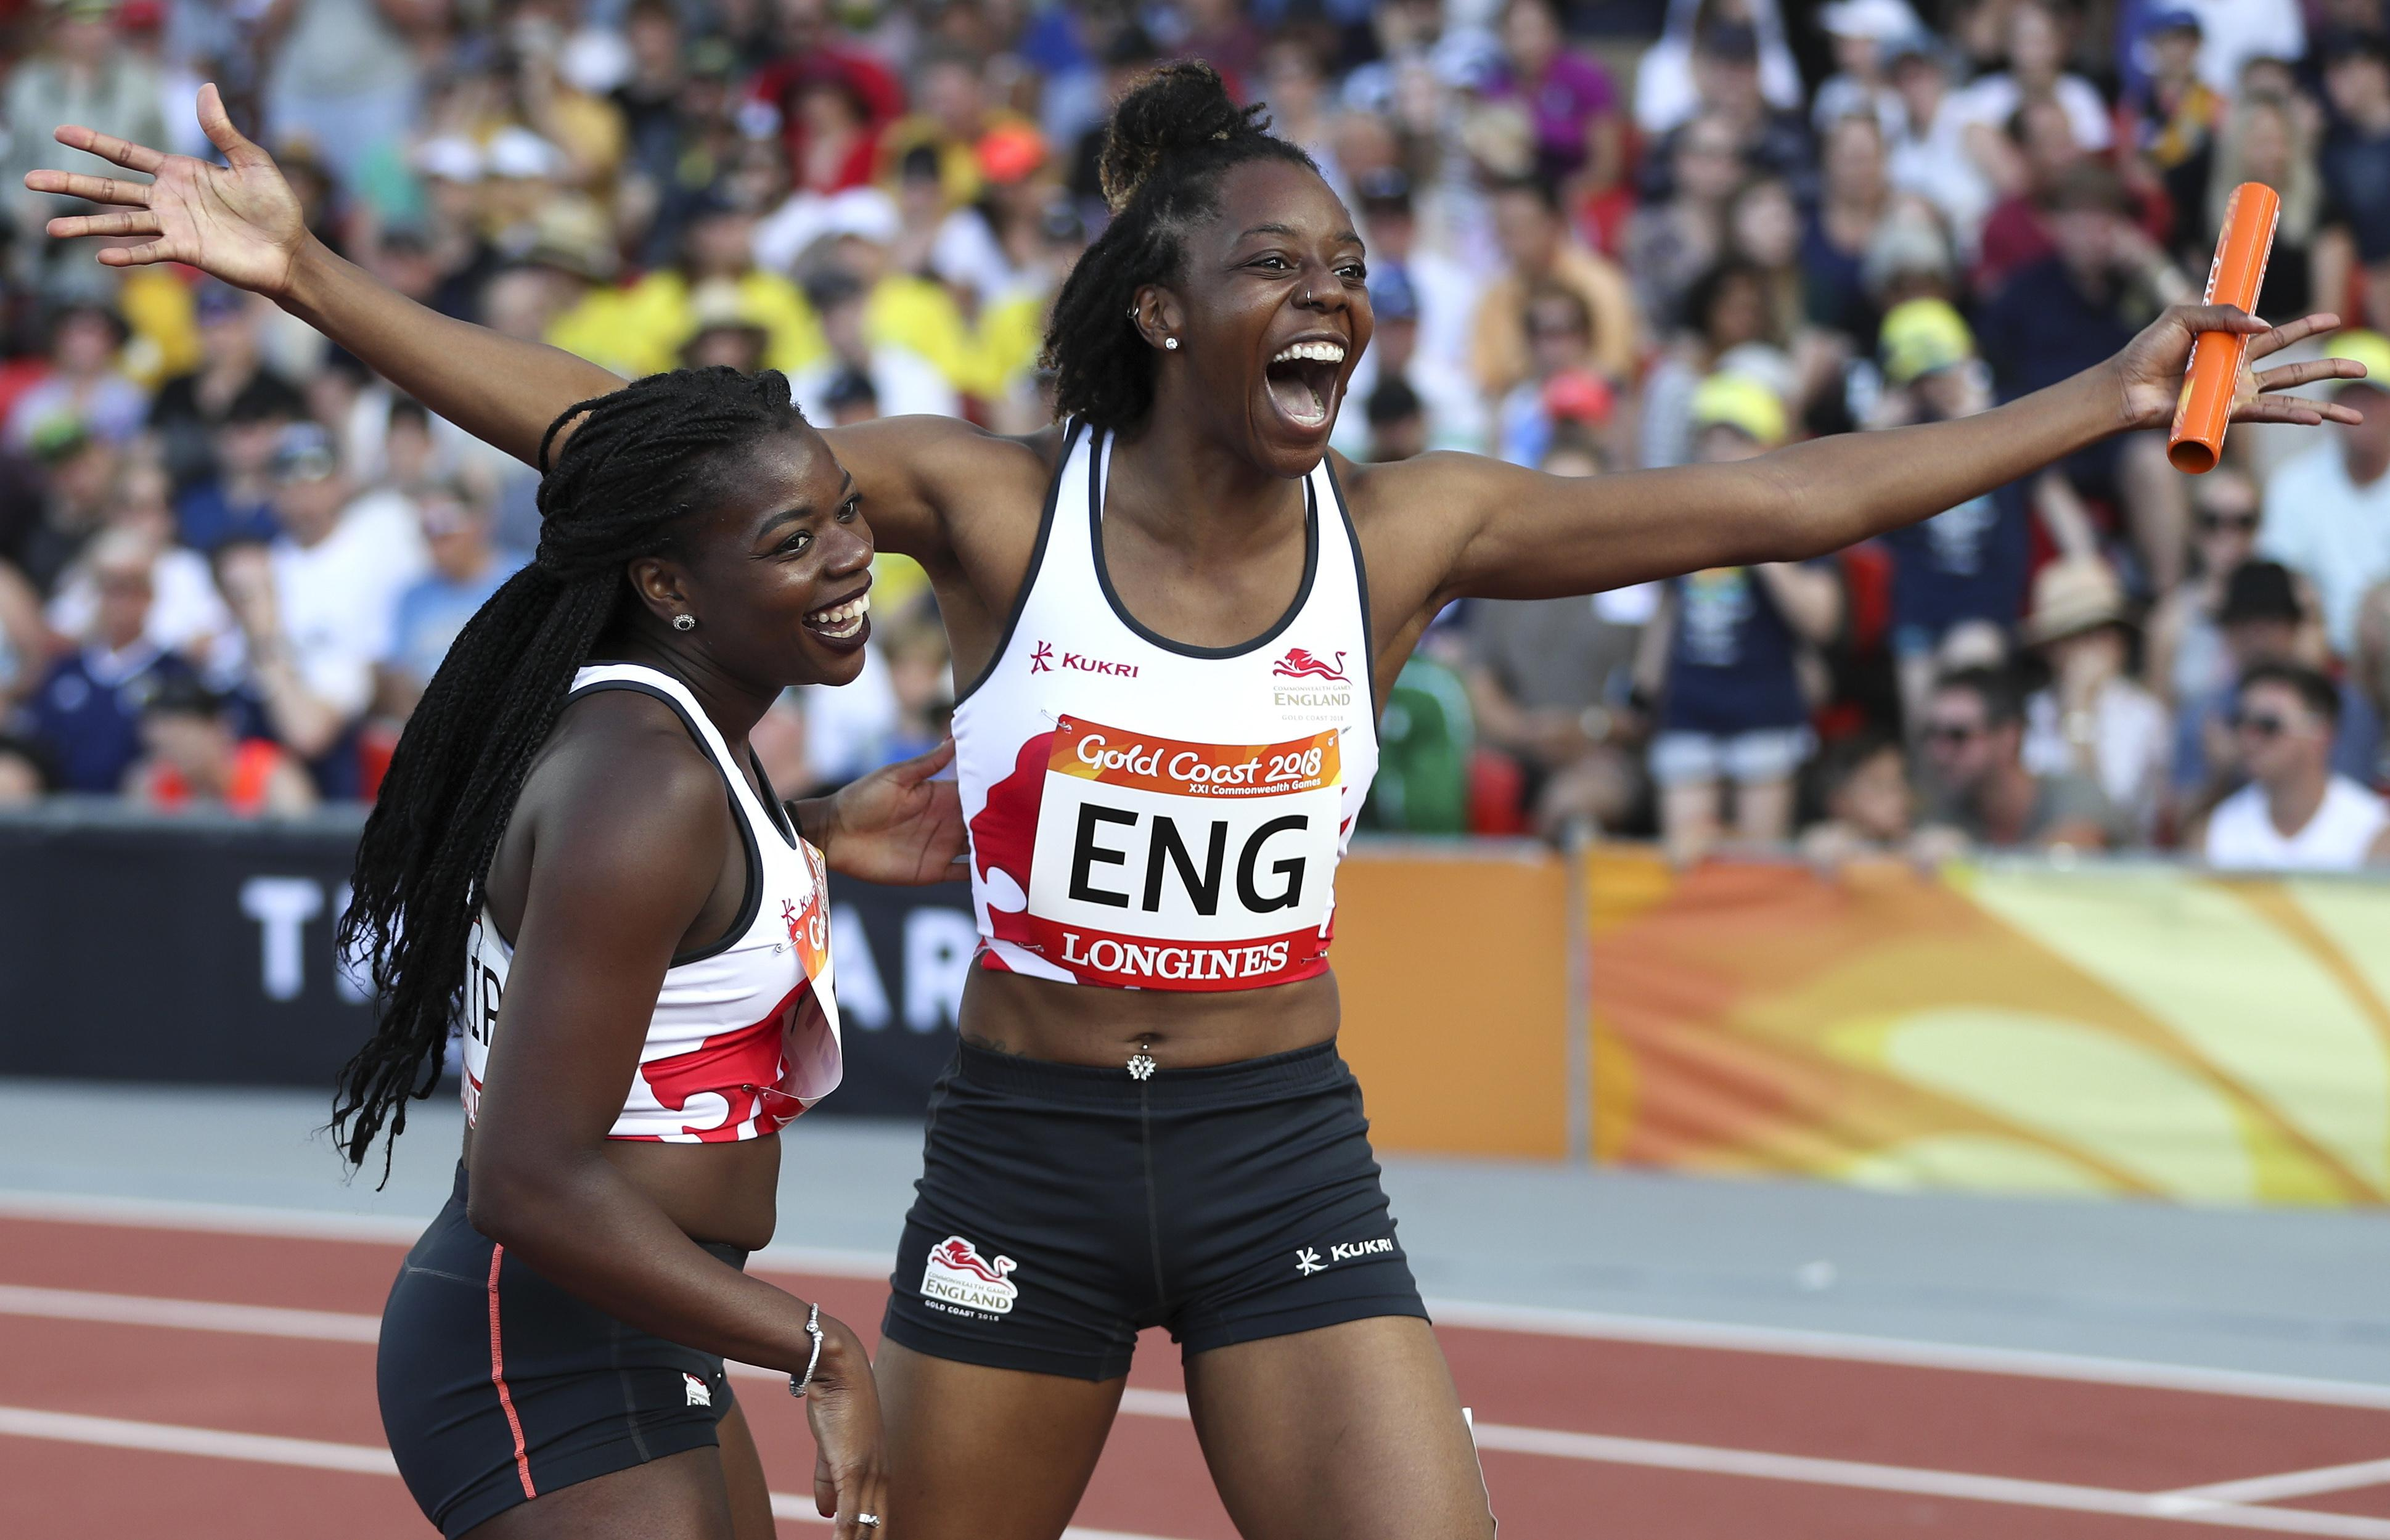 Lorraine Ugen held her nerve and her form as she brought the England quartet home for gold in the 4x100m relay